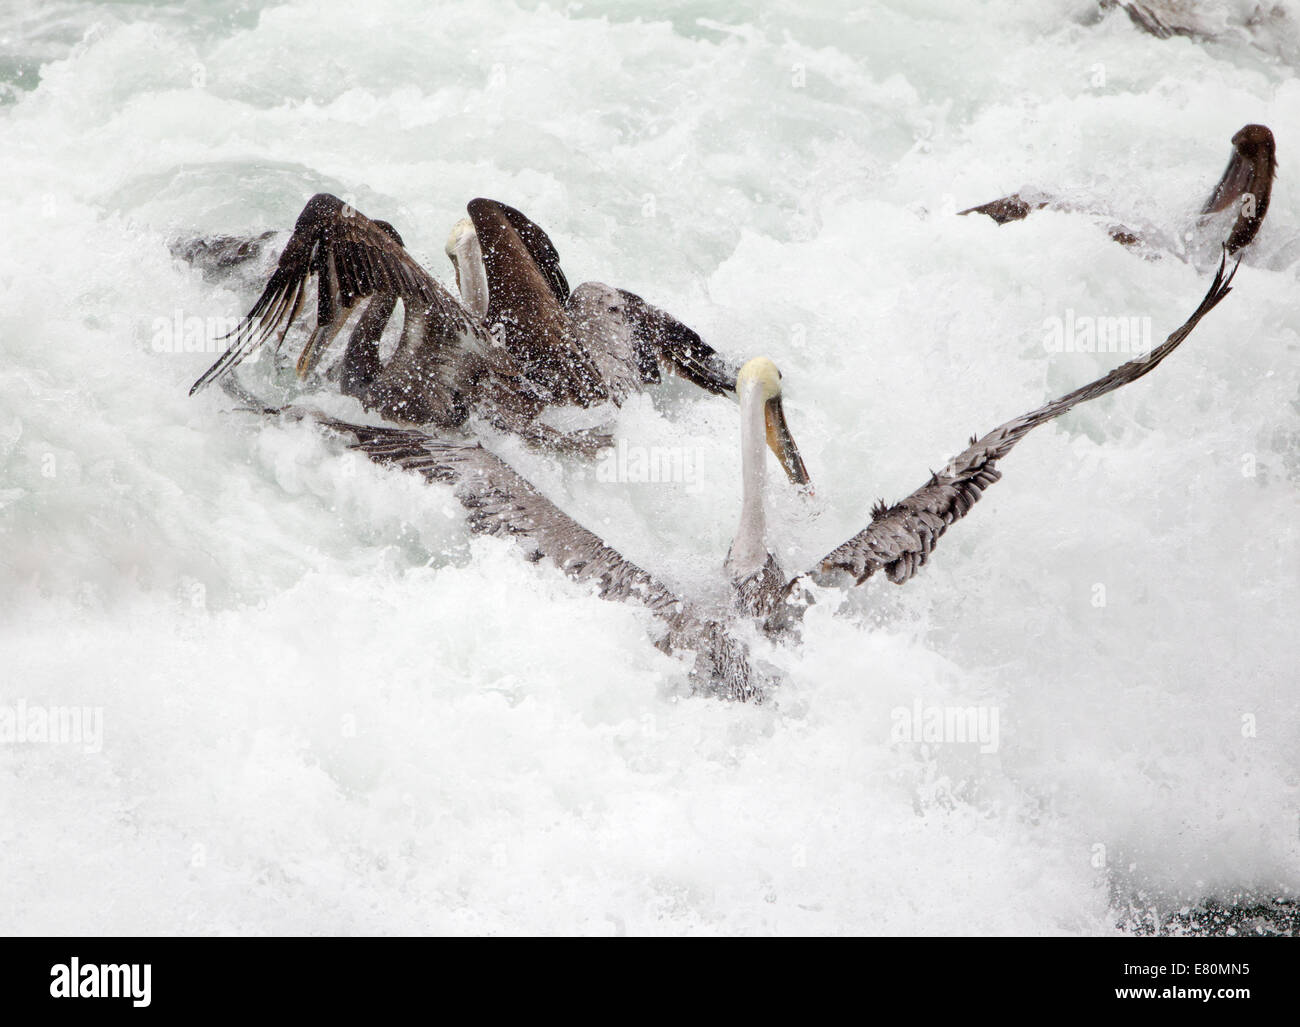 Brown Pelicans Swamped in a Crashing Wave - Stock Image